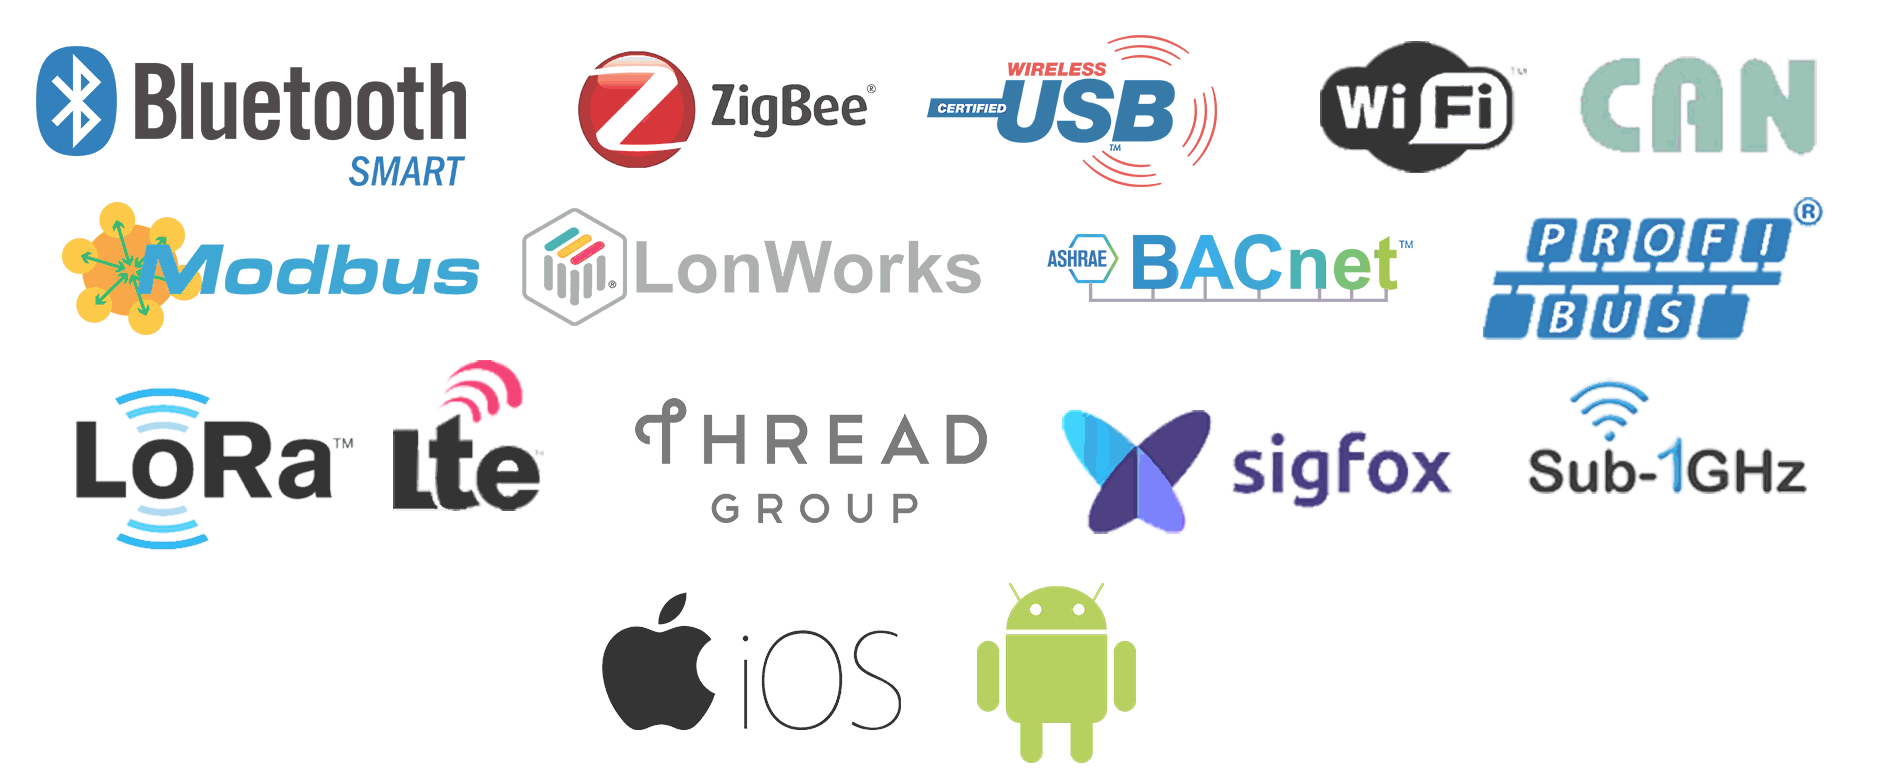 Bluetooth, WiFi, Android, iOS, LPWAN, USB, SigFox, Mesh, thread, Lora